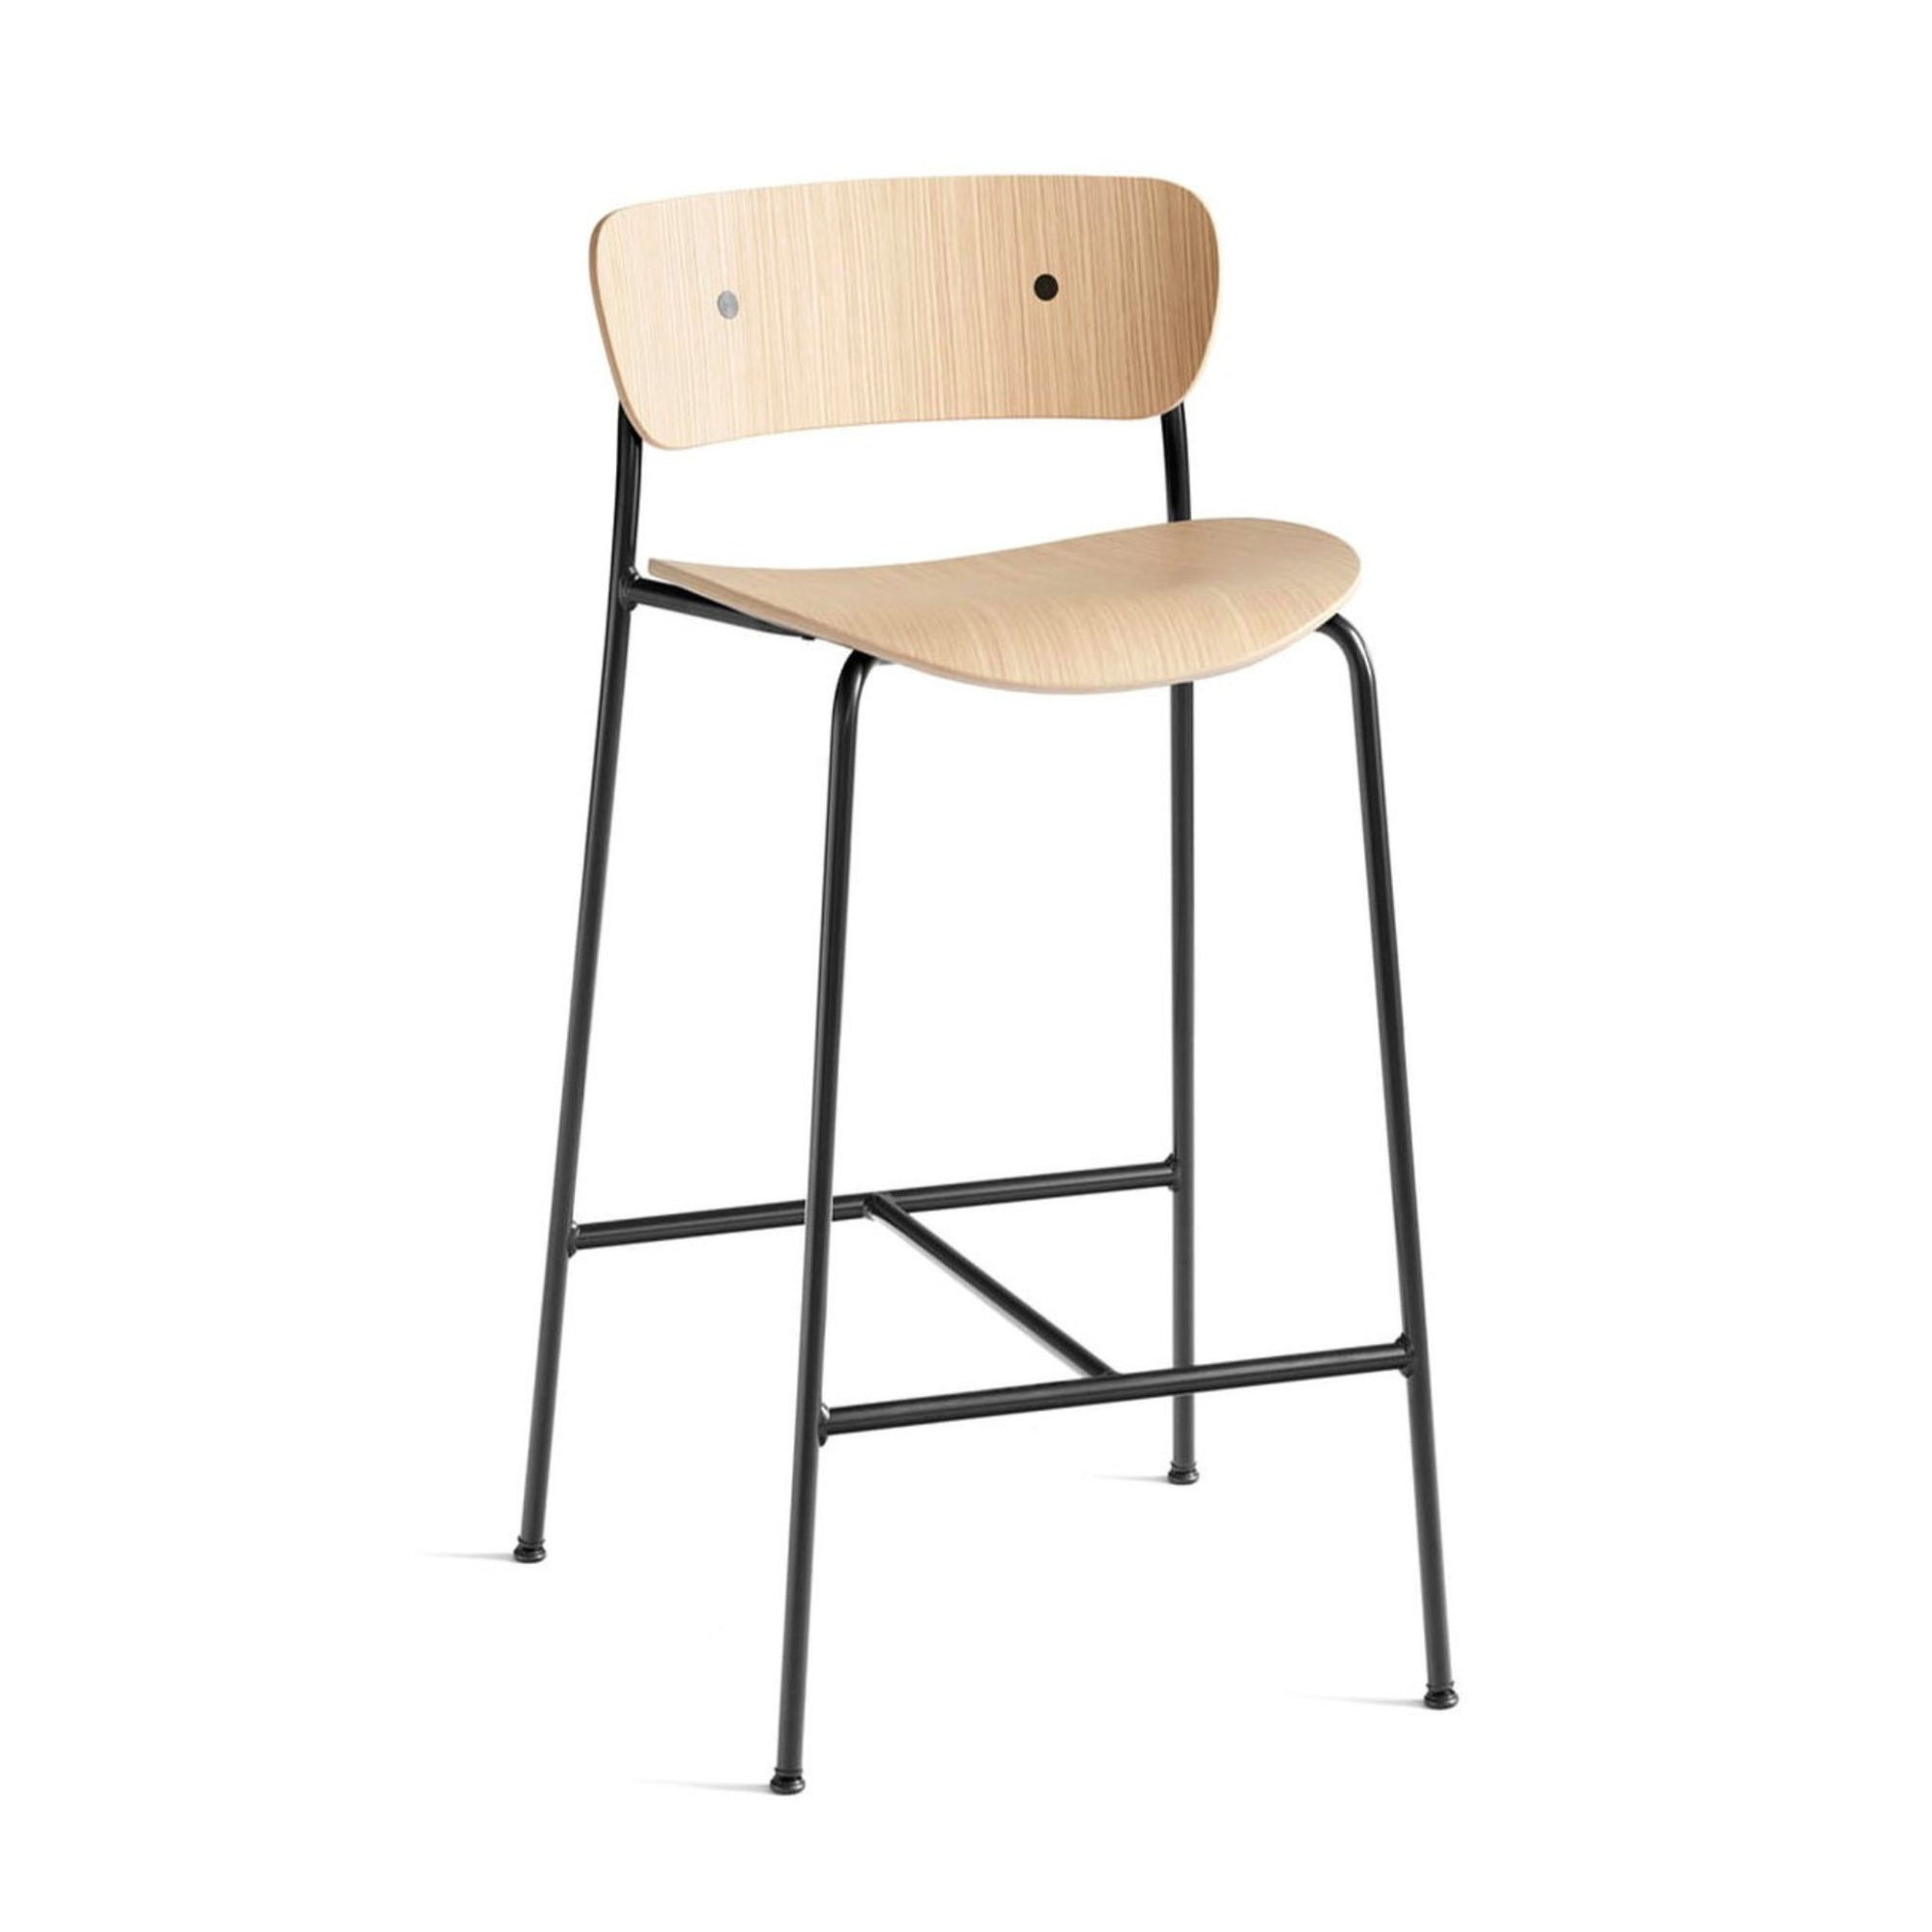 &Tradition Pavilion AV7 counter stool 65cm, oak - black legs